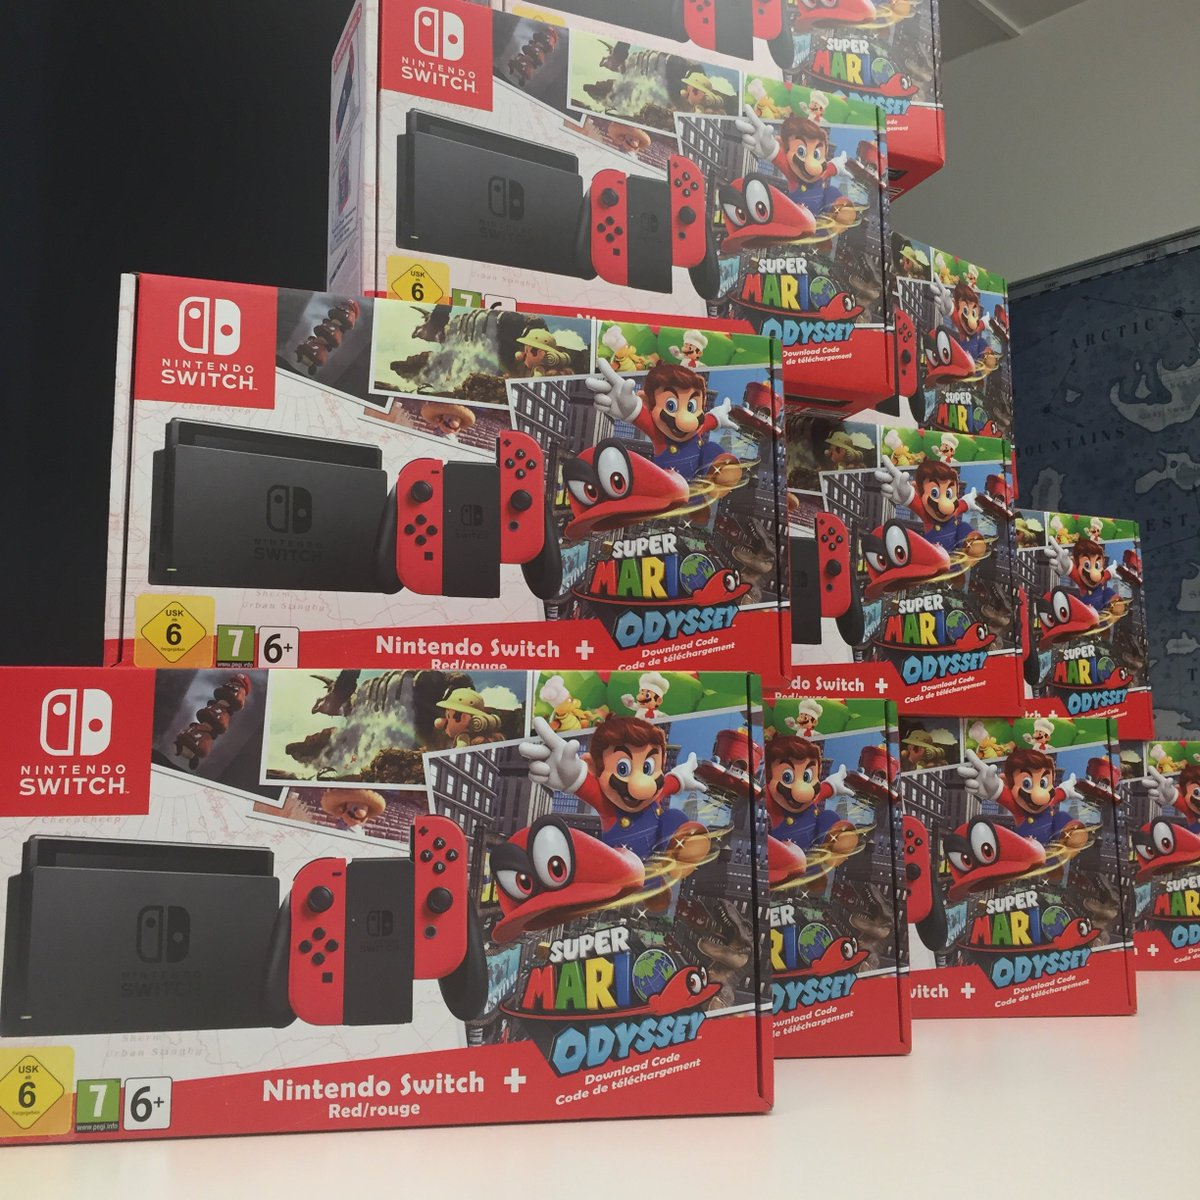 small giant on twitter christmas came early to the office and santa brought gifts for the whole team psstwe are also hiring httpstco1fjhttodvl